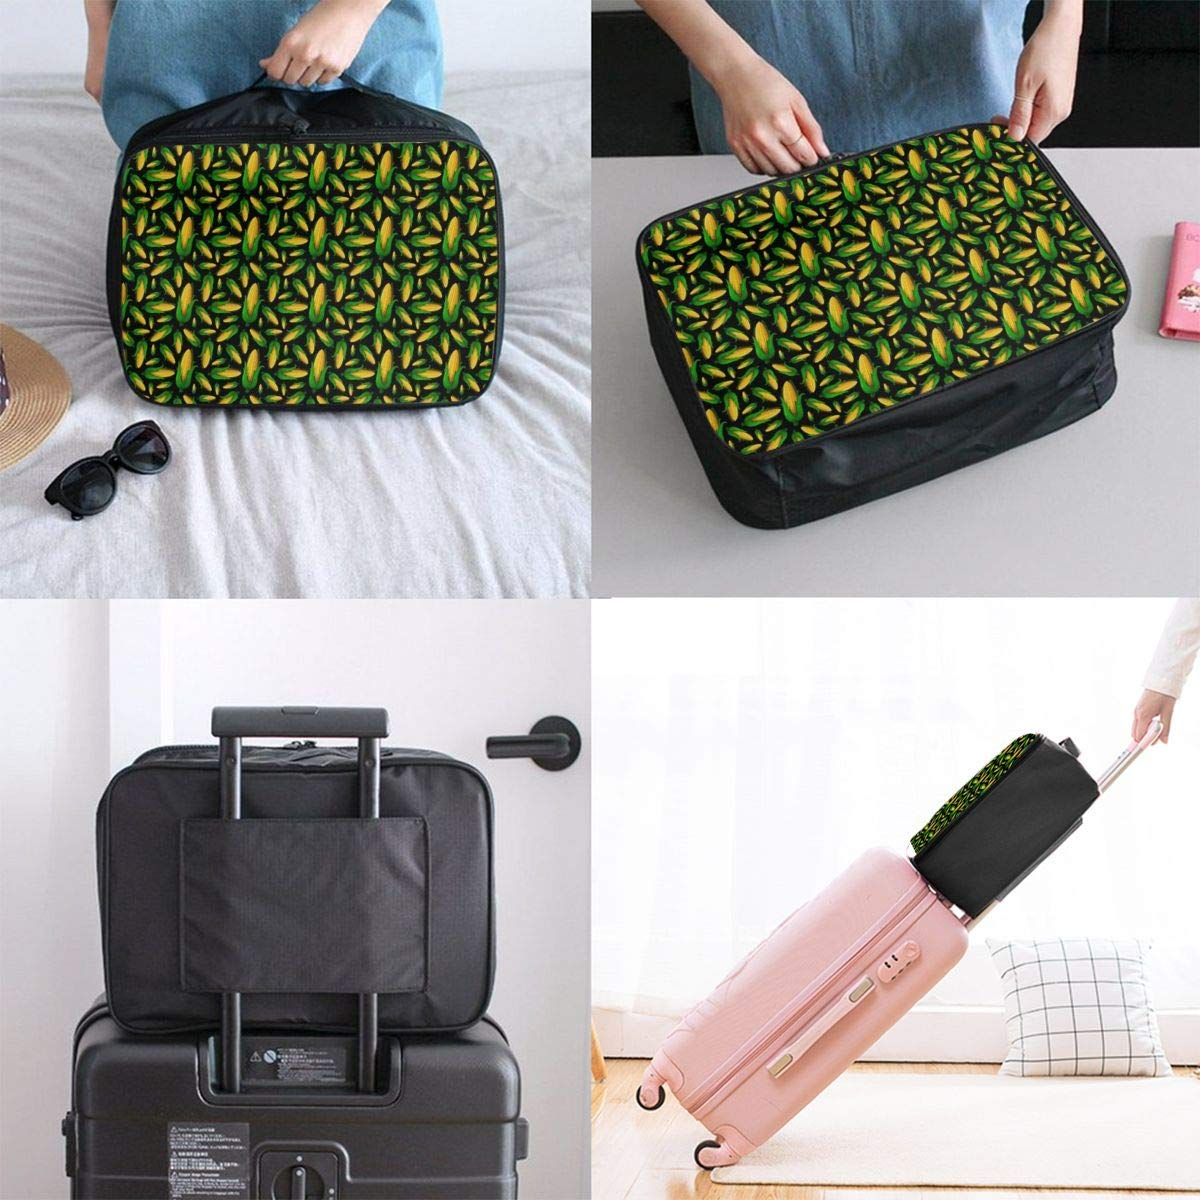 JTRVW Luggage Bags for Travel Funny Corn Black Travel Lightweight Waterproof Foldable Storage Carry Luggage Duffle Tote Bag